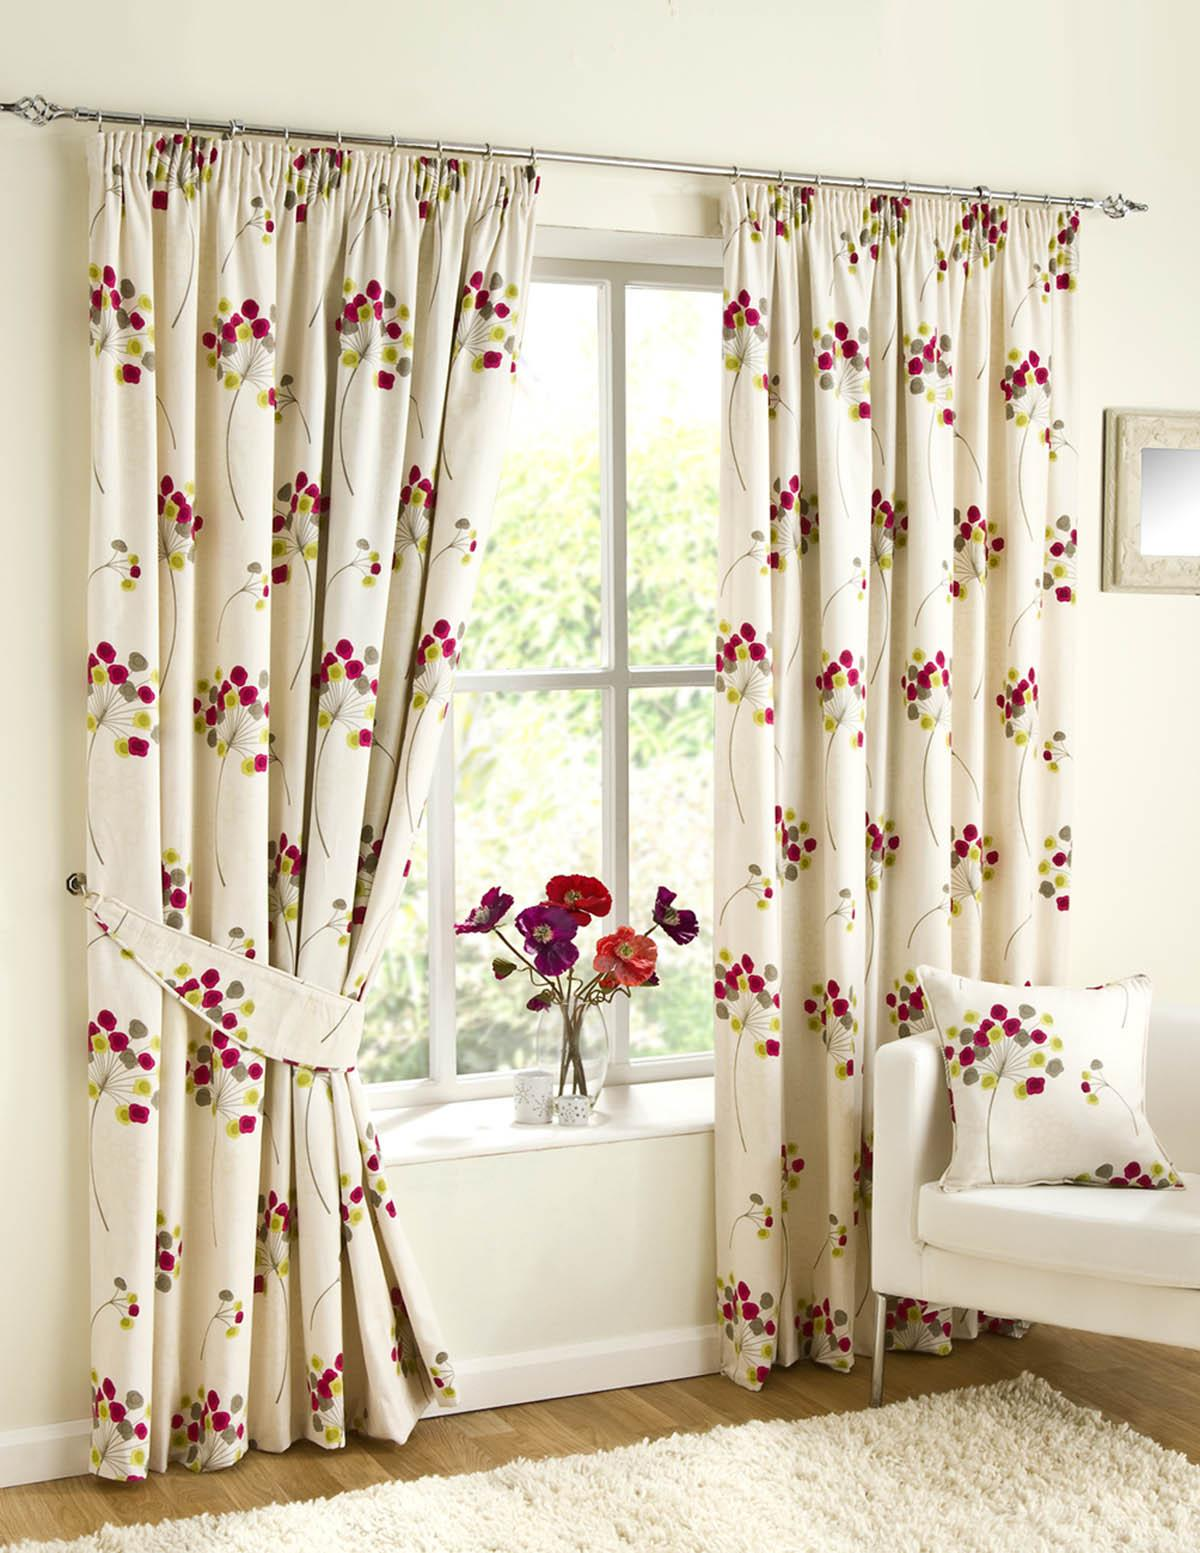 Hot pink curtains 108 inches - Blair Ready Made Lined Curtains